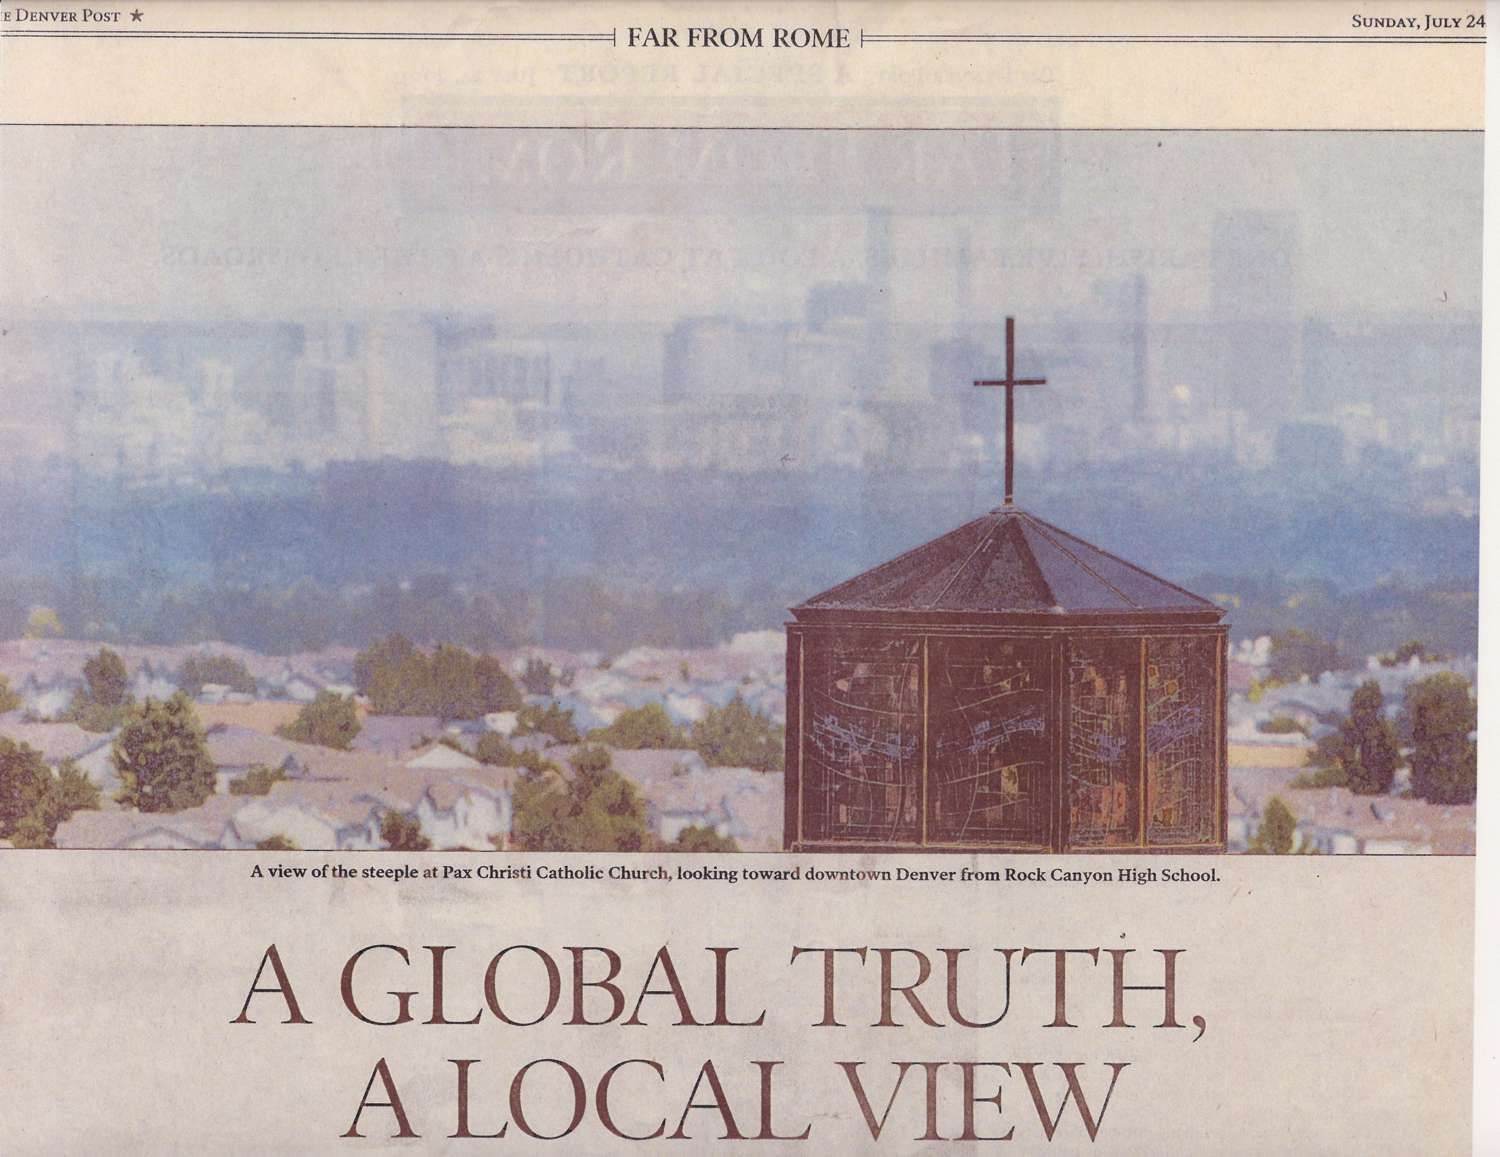 A global truth, a local view